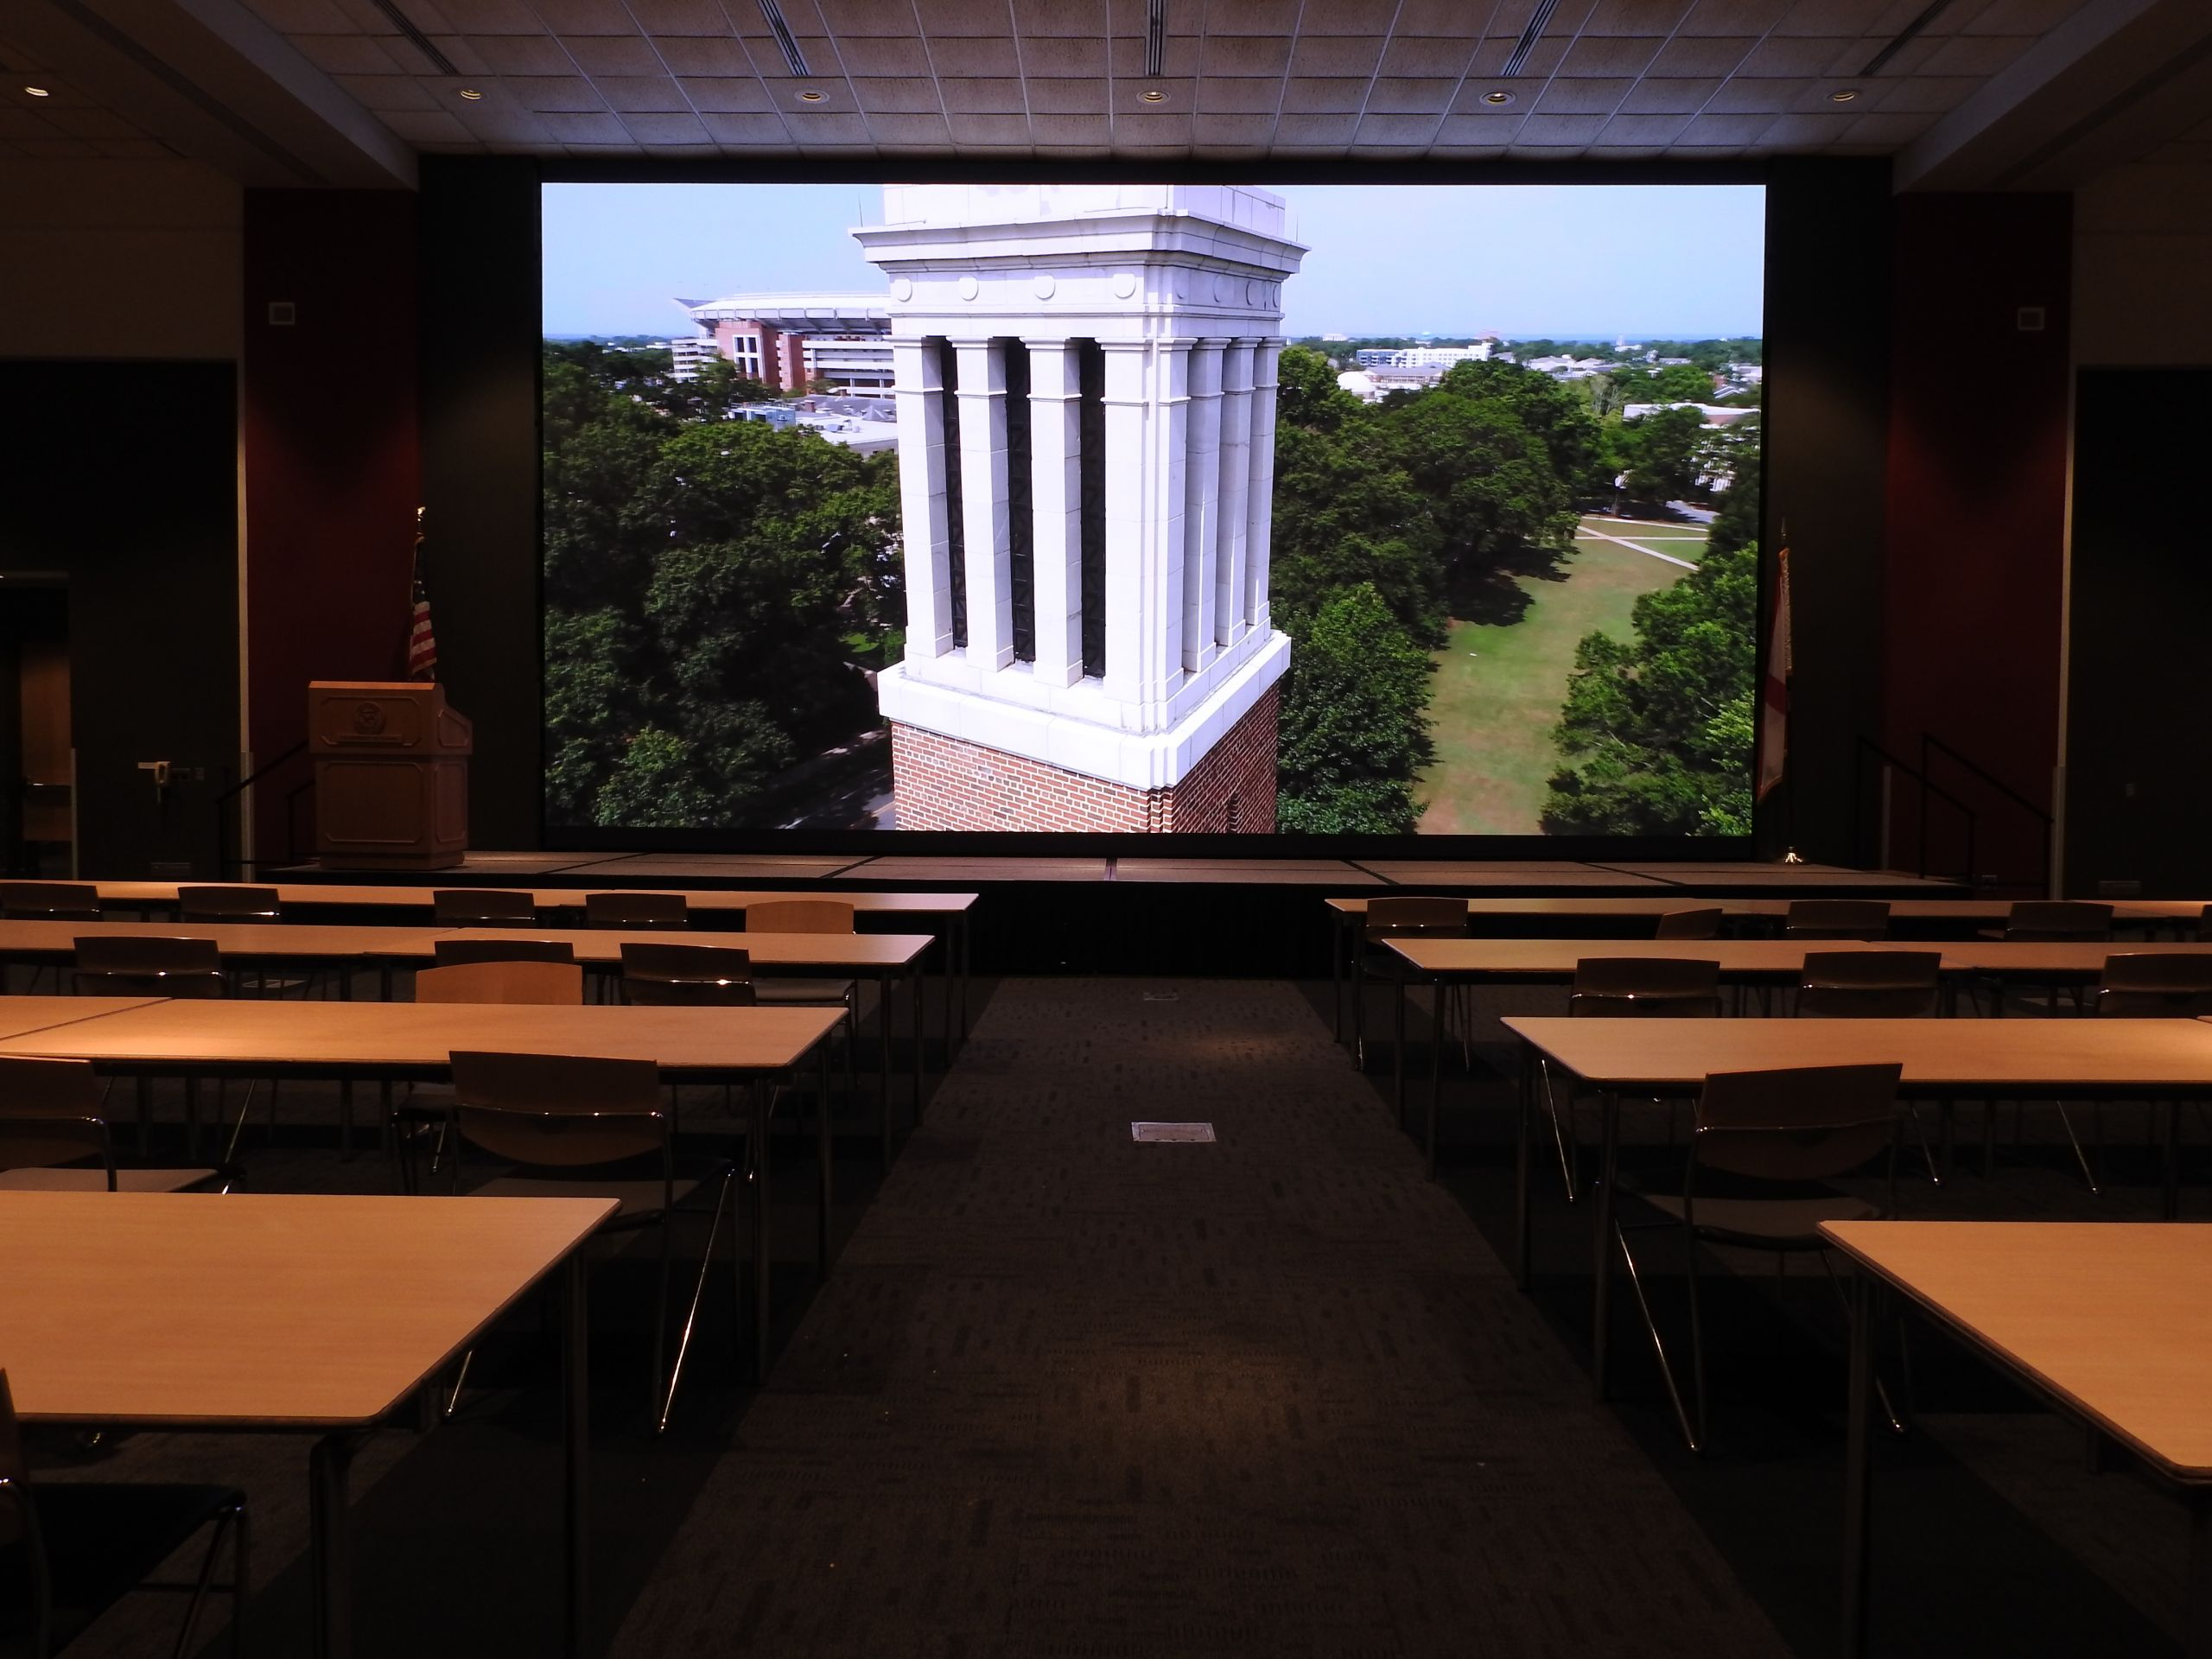 conference room with a screen depicting denny chimes